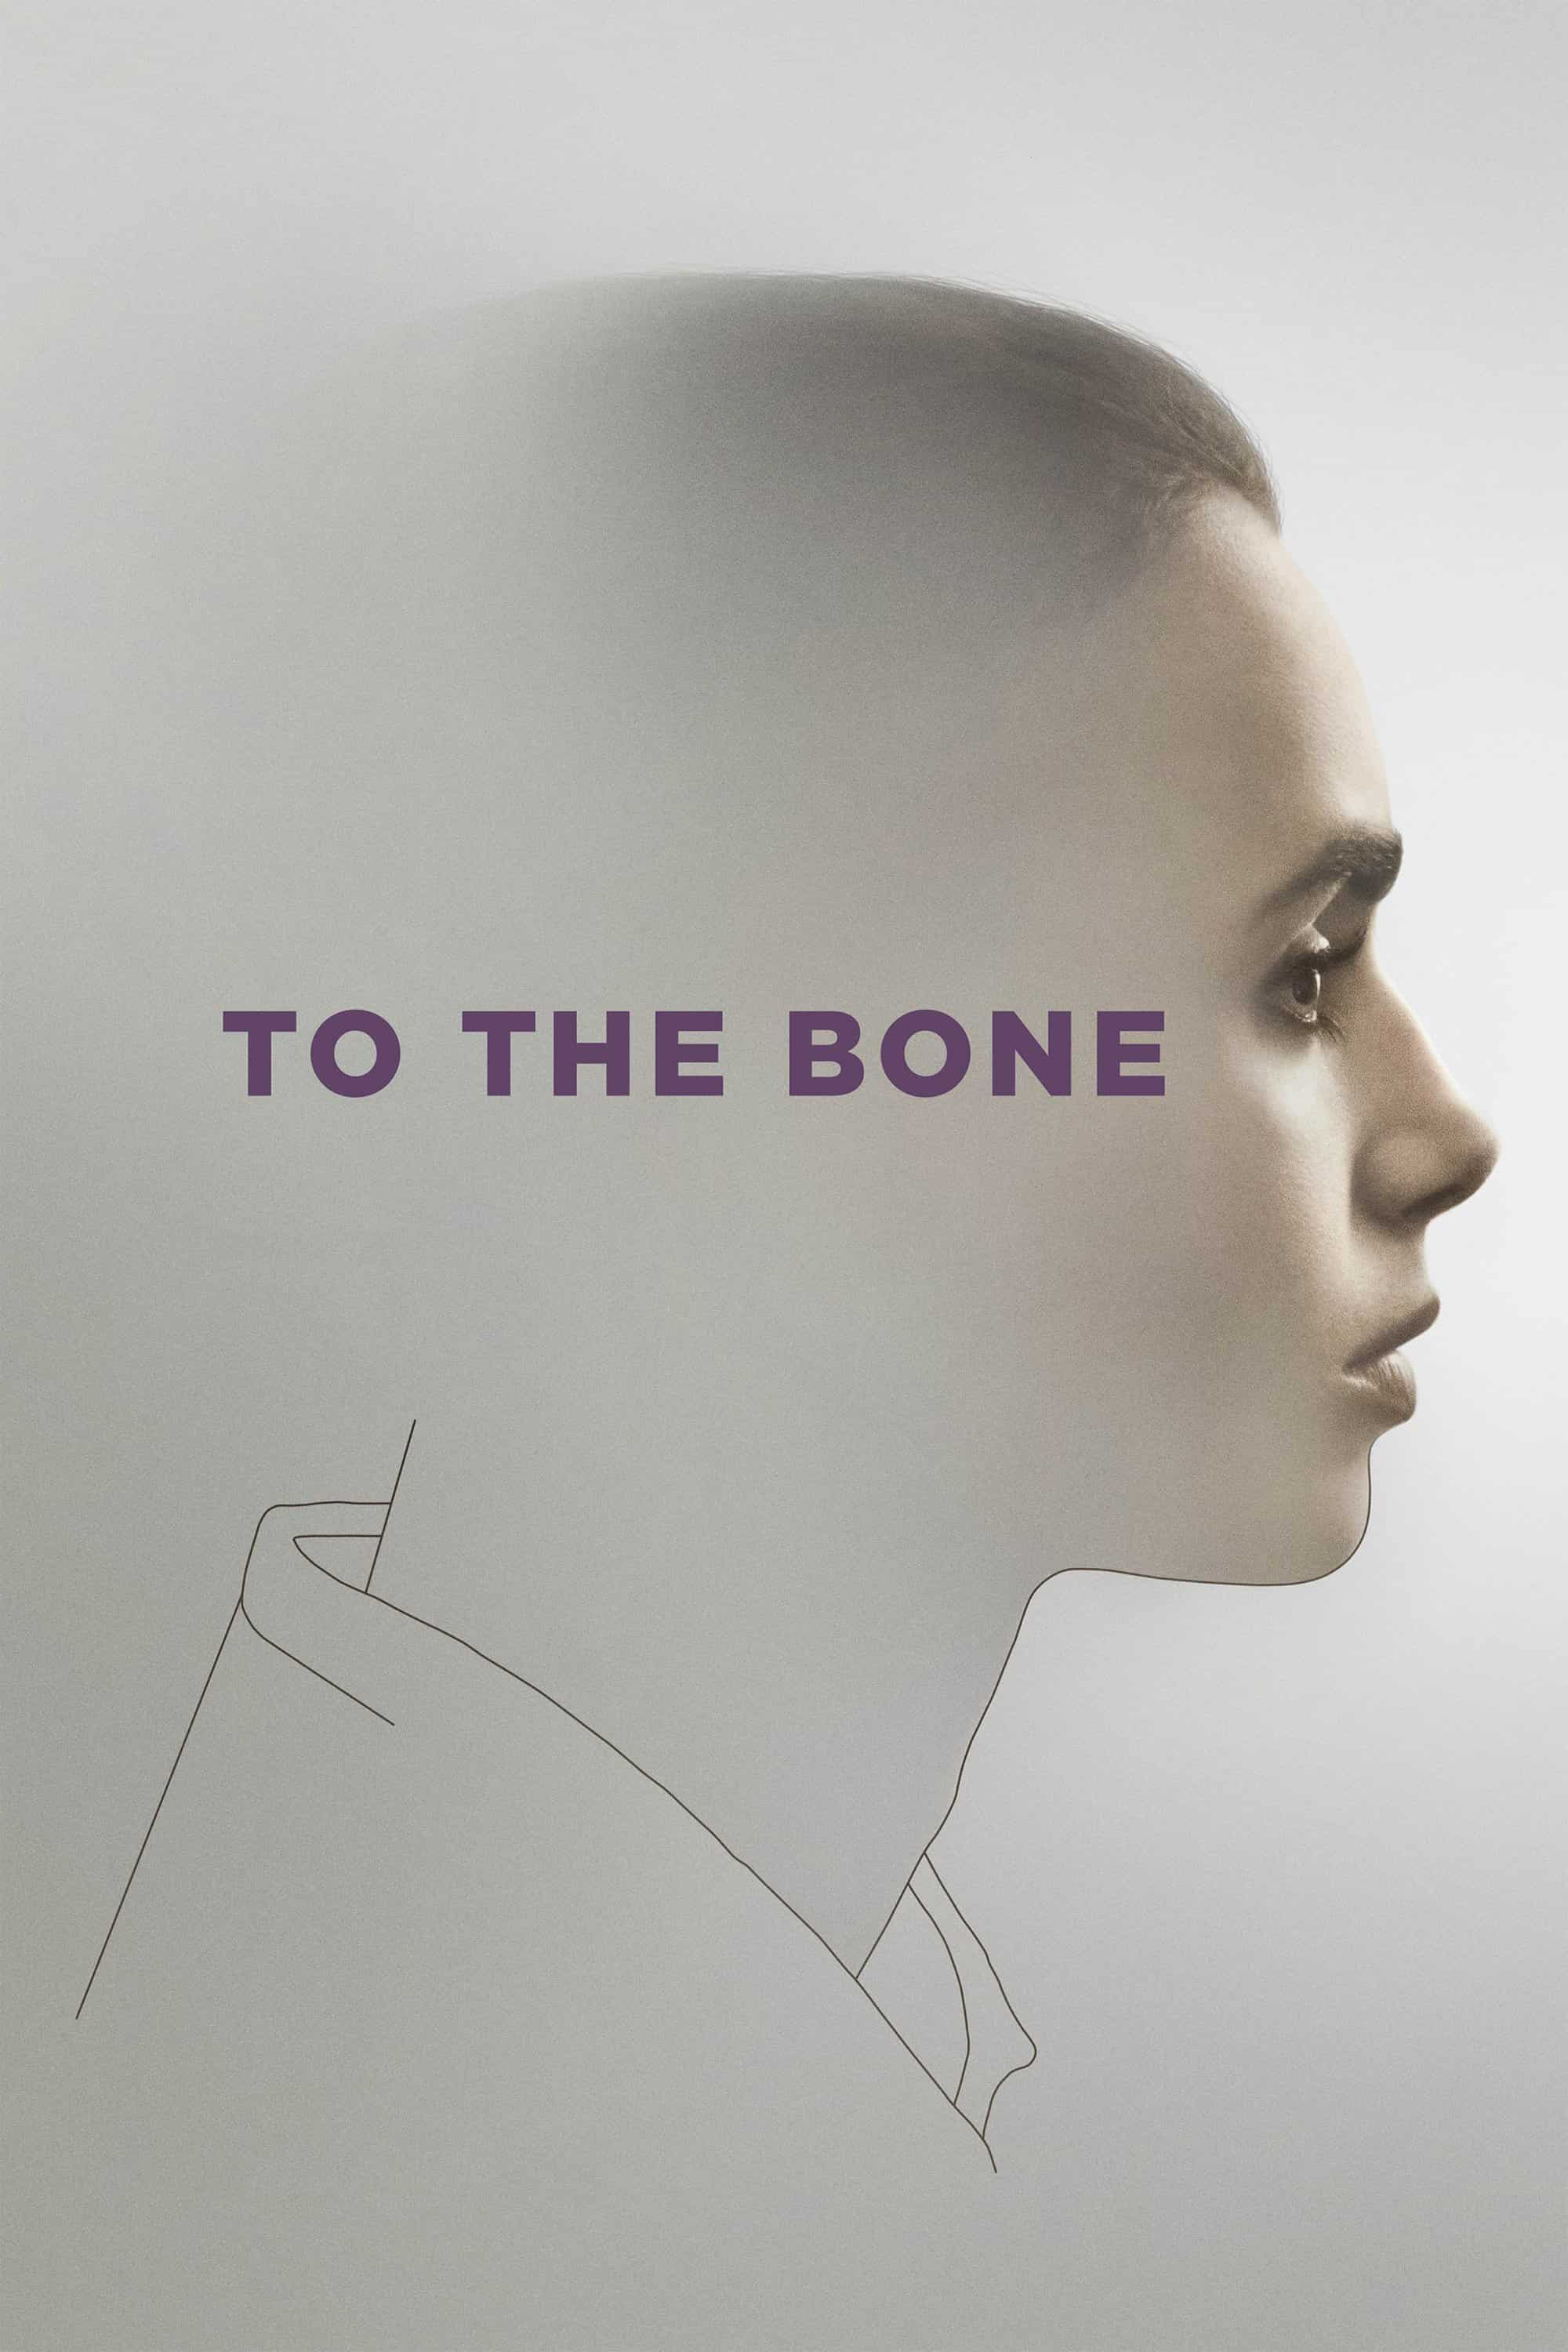 To the Bone, 2017